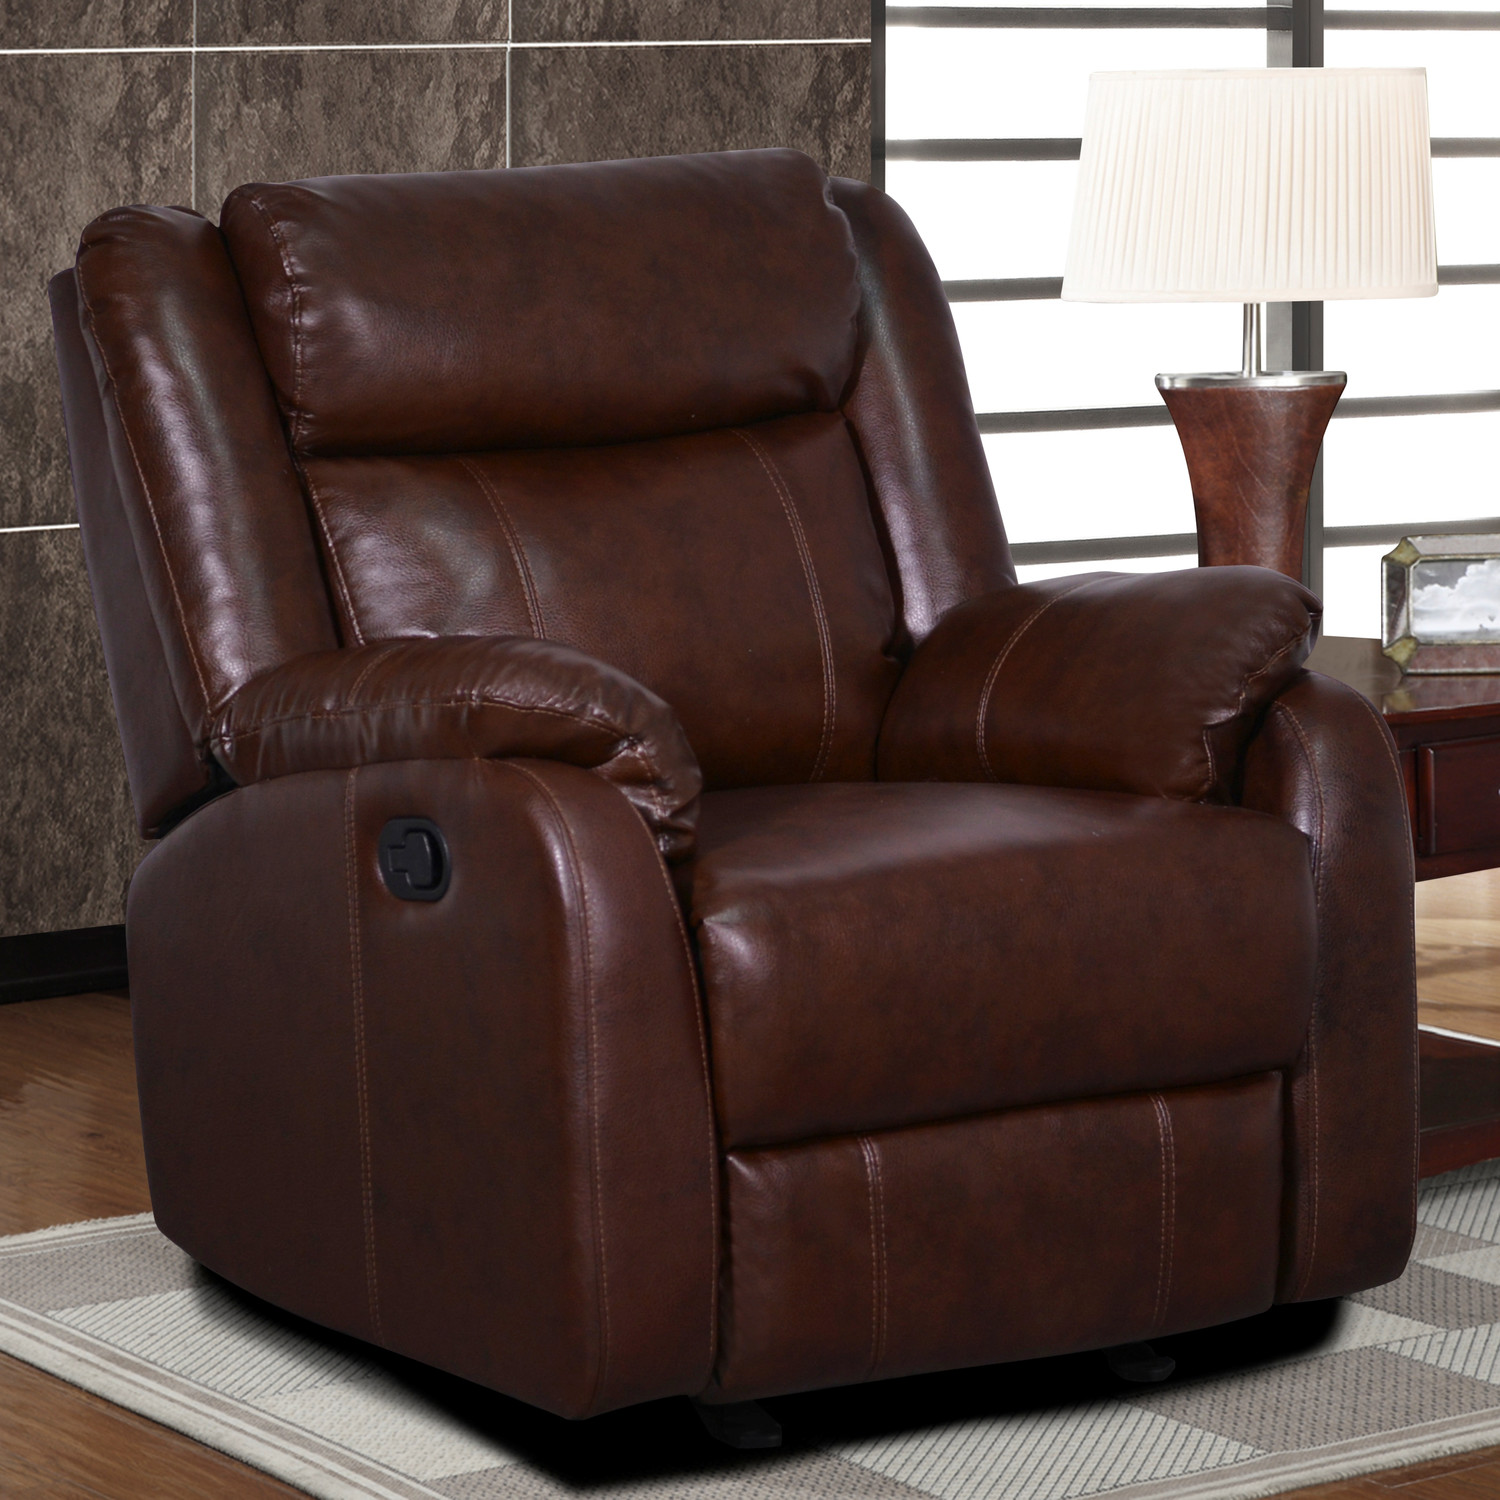 nolan reclining sofa set brown leather dcg stores. Black Bedroom Furniture Sets. Home Design Ideas